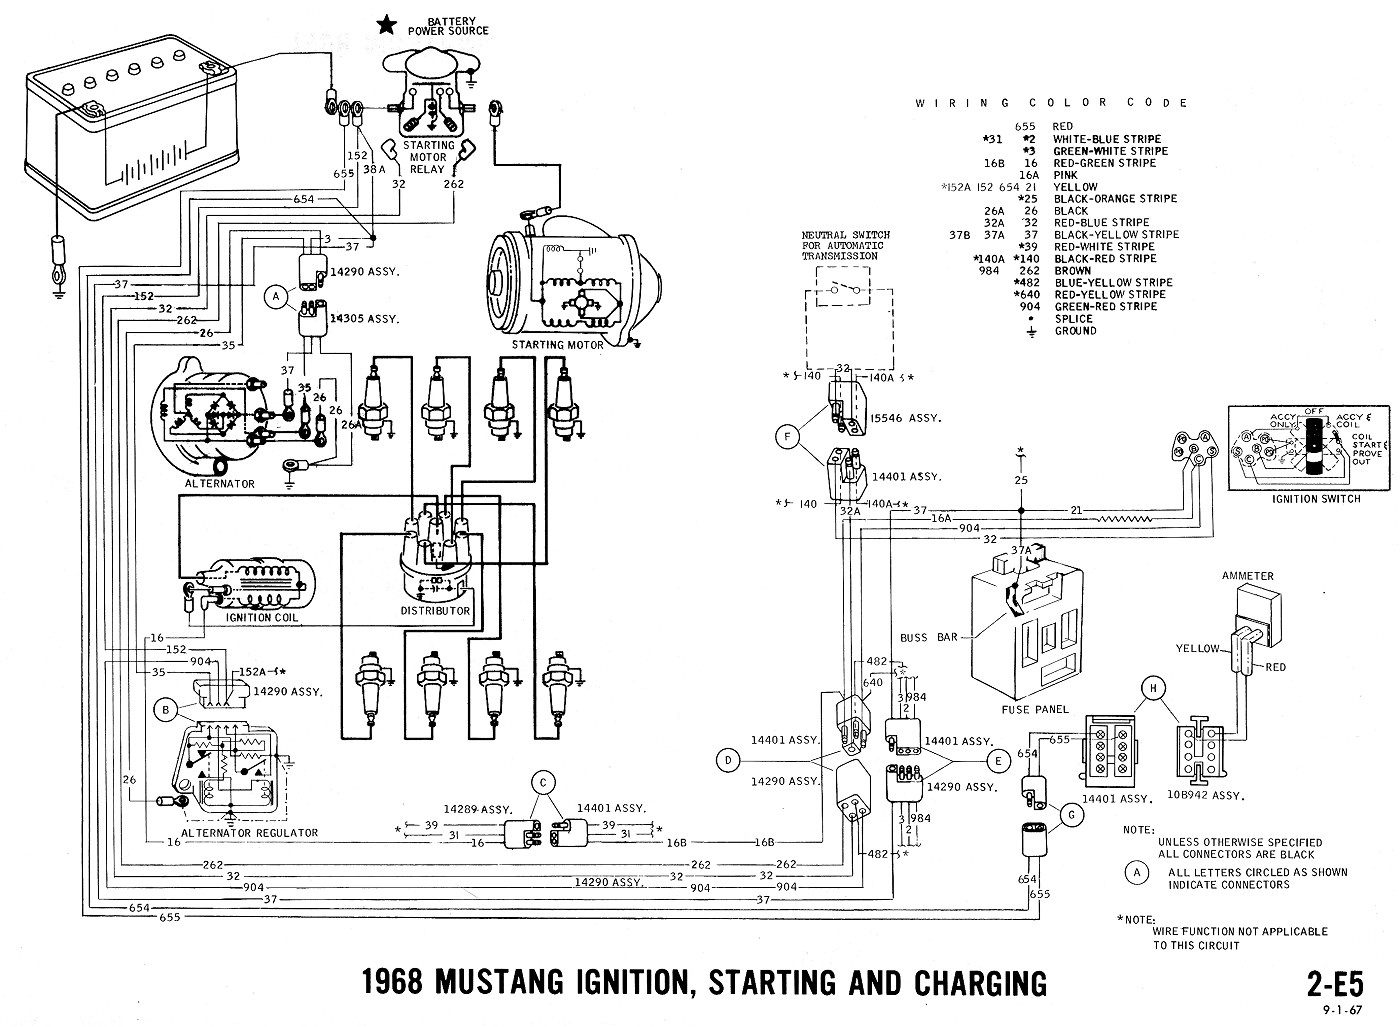 1970 mustang ignition wiring diagram wiring diagrams schematic 1970 ford mustang ignition wiring diagramfor wiring diagram data 66 mustang ignition wiring diagram 1970 mustang ignition wiring diagram